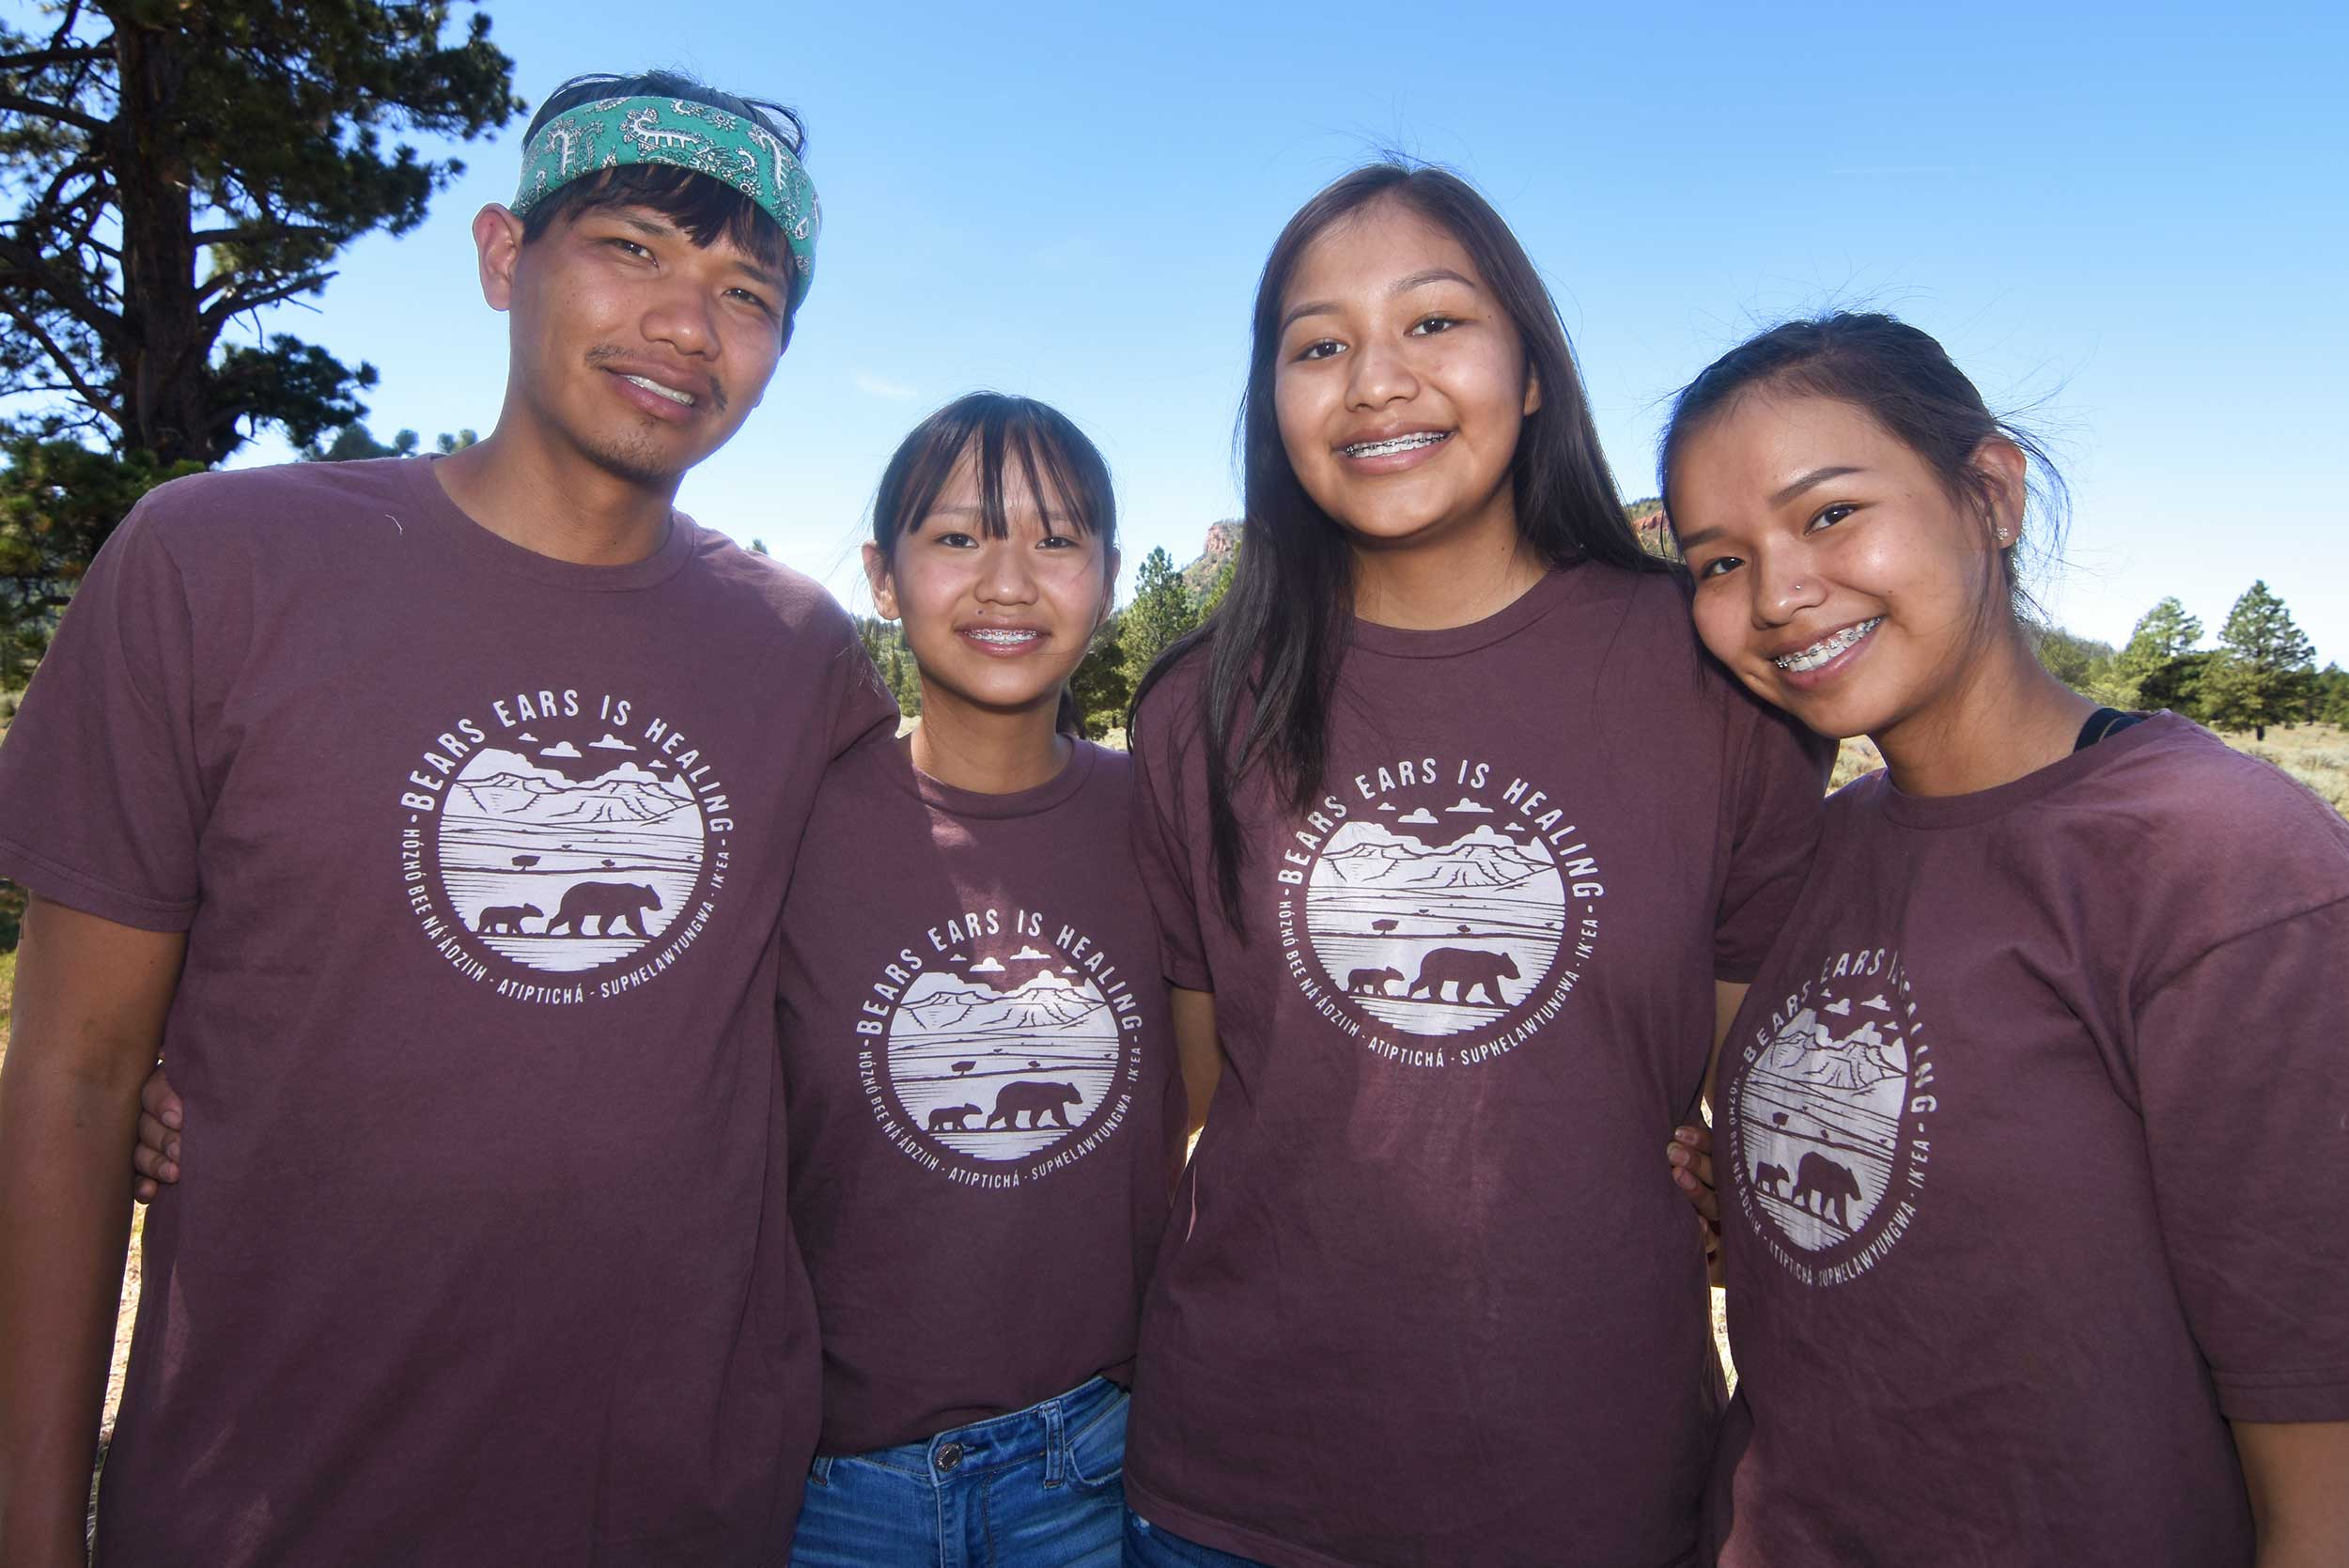 Bears Ears Is Healing Shirts